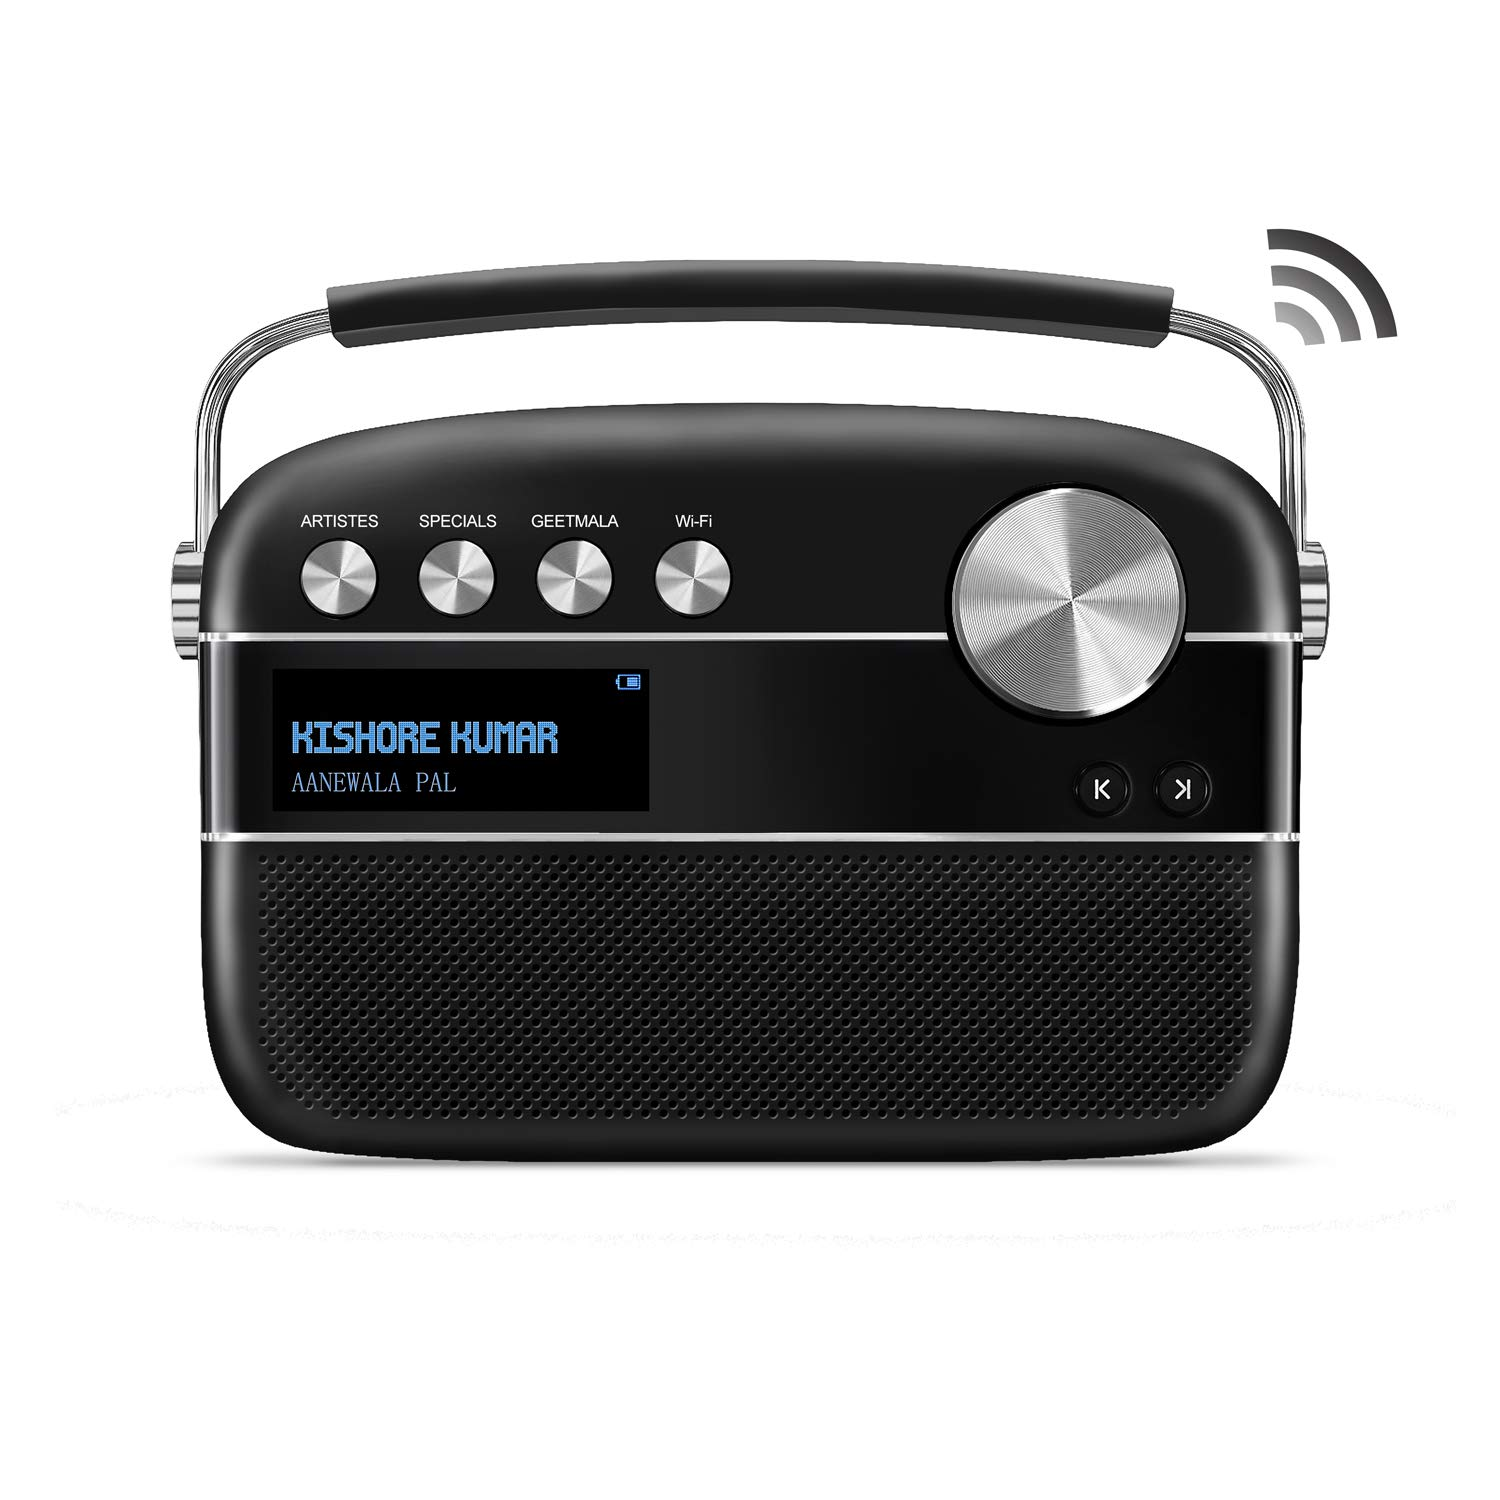 with WiFi, Black with 20,000 Songs Saregama Carvaan 2.0 Portable Digital Music Player